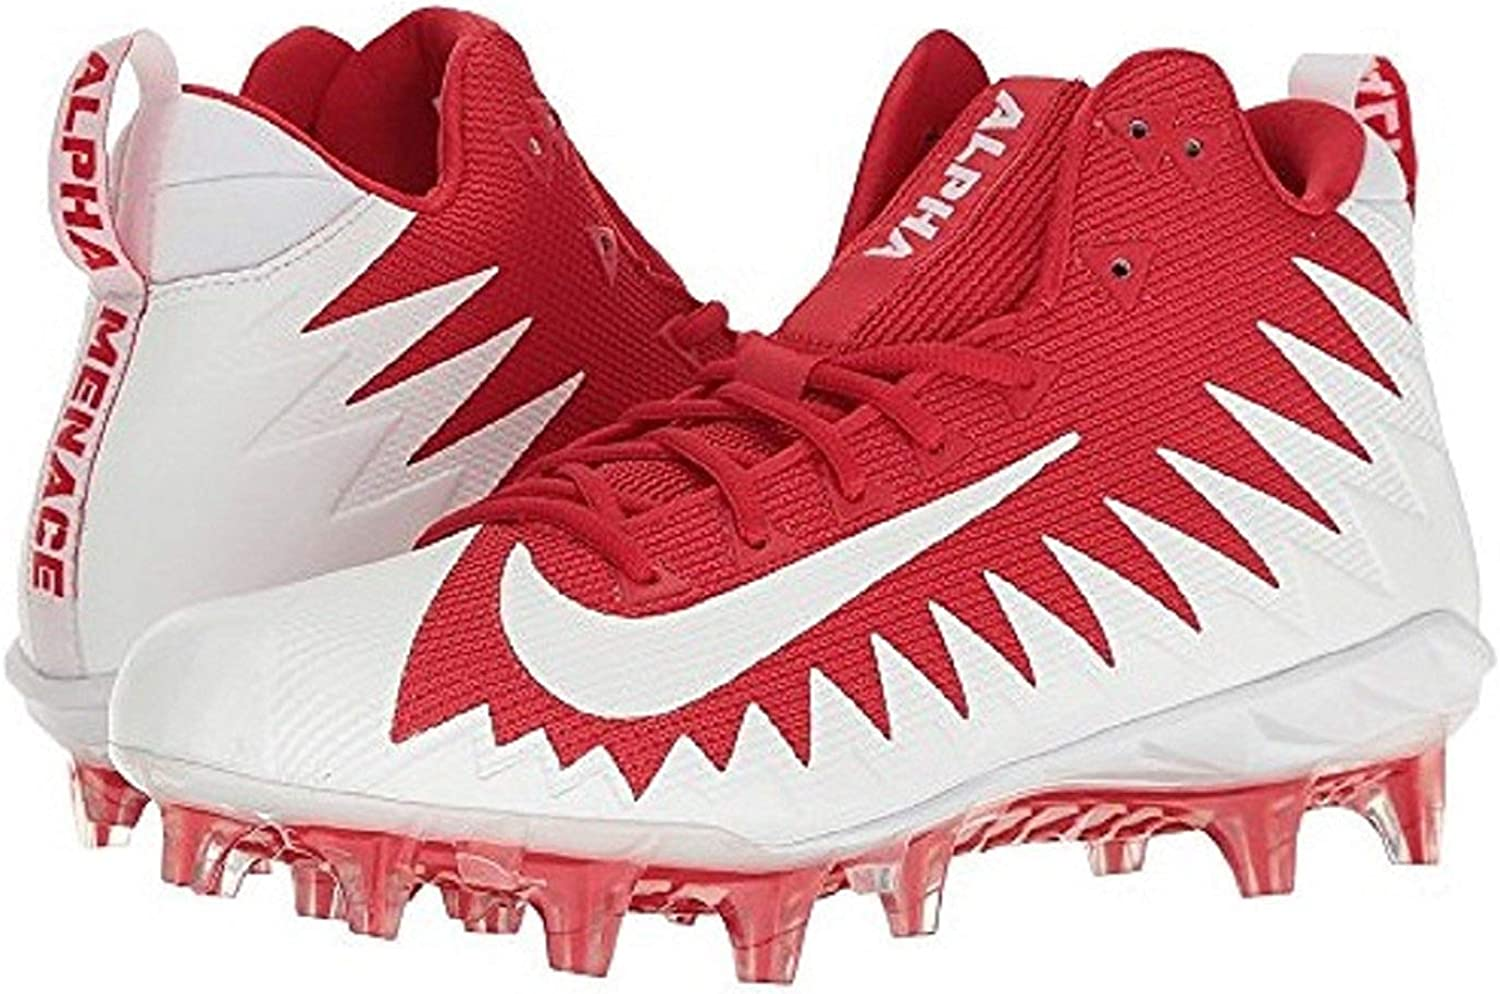 NIKE Alpha Menace Pro Mid Mens Football Cleats 871451 611 University rot Weiß - Weiß 8 rot Weiß